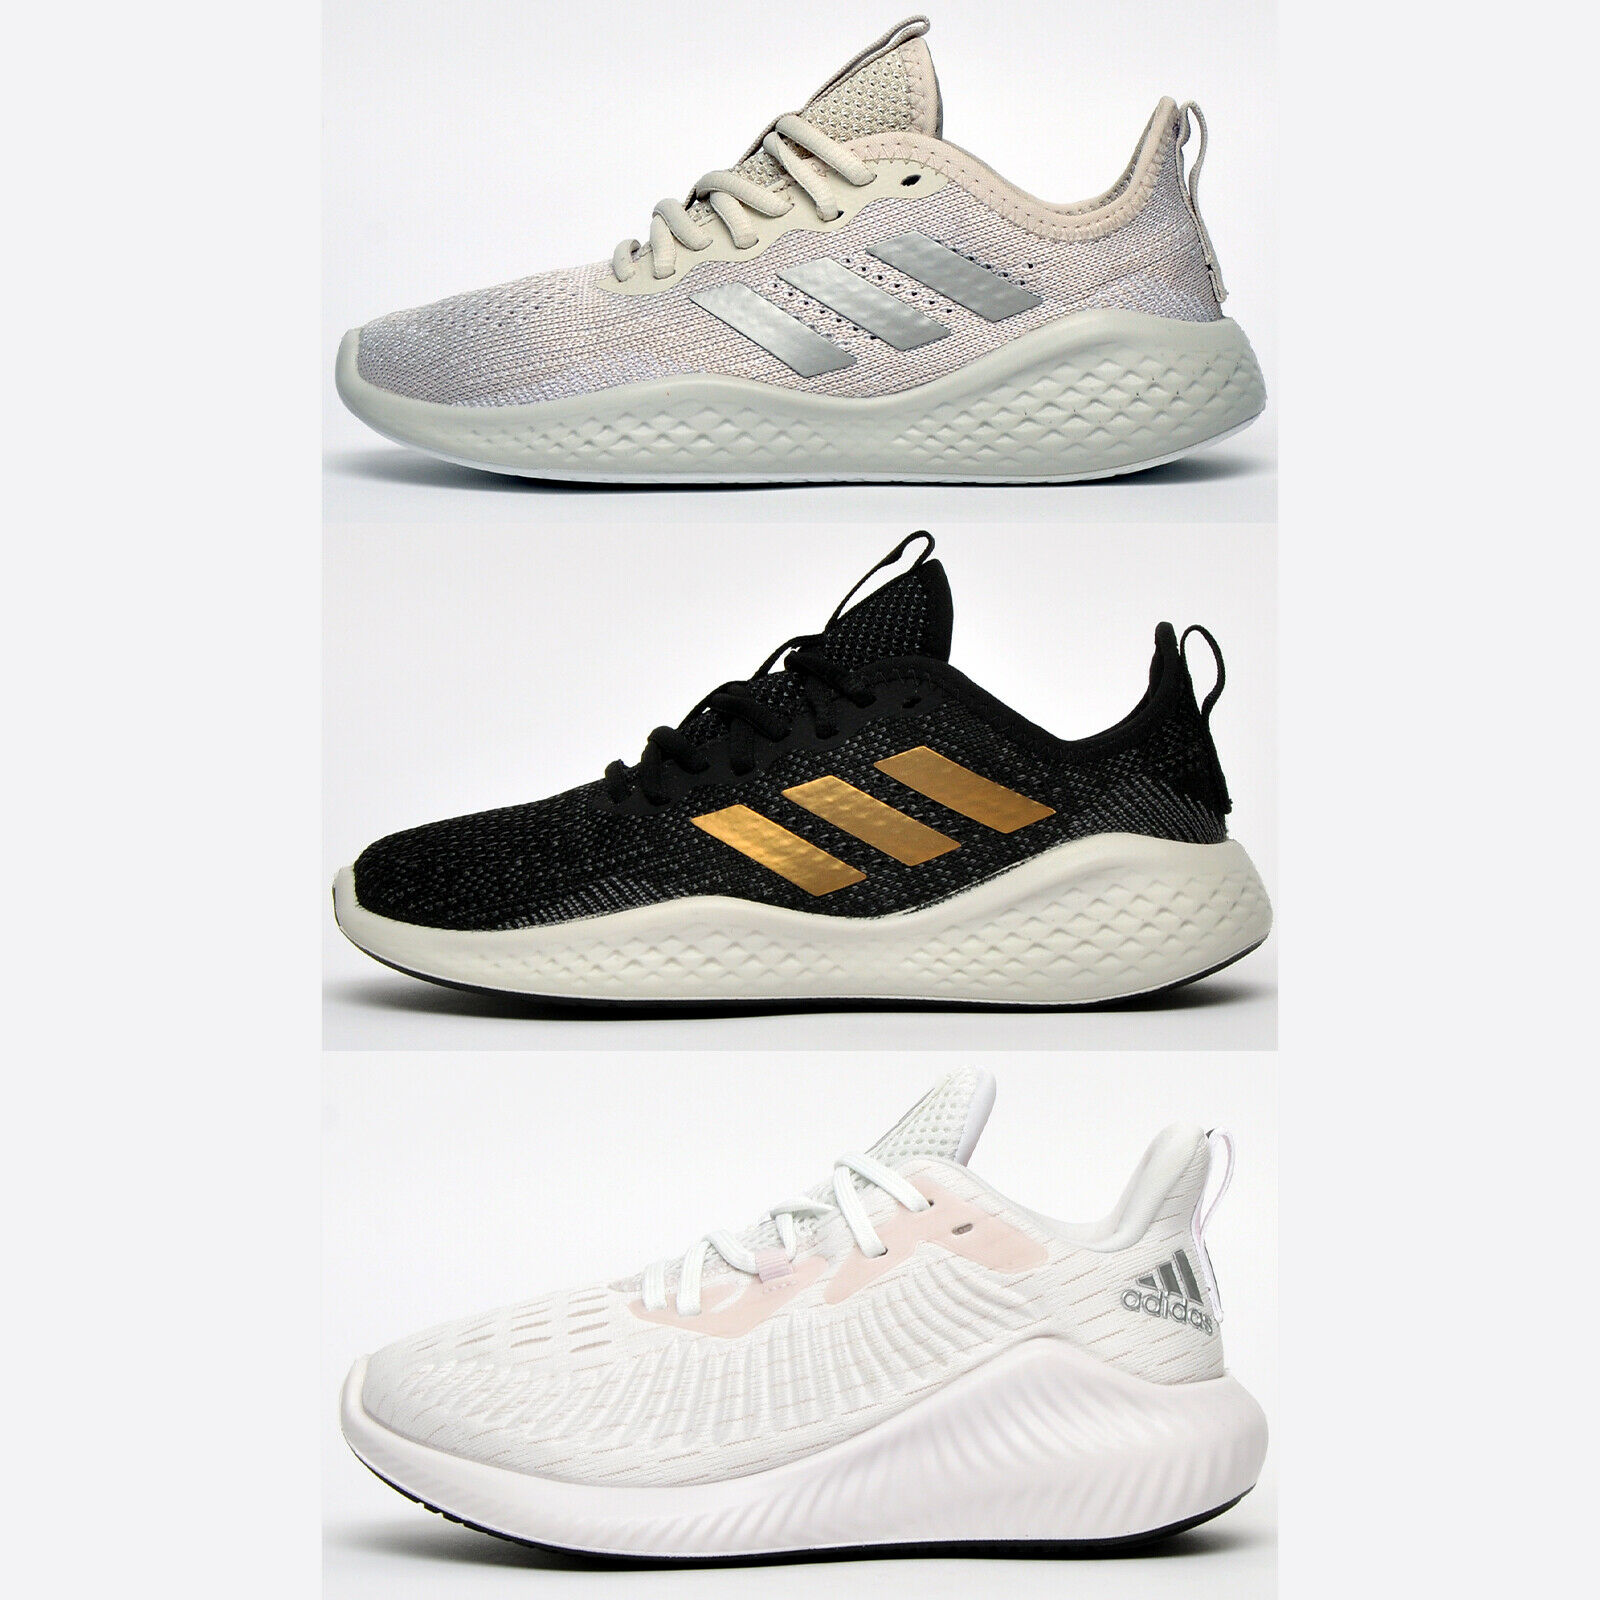 SALE – ADIDAS Womens Premium Running Shoes Gym Fitness Workout Trainers